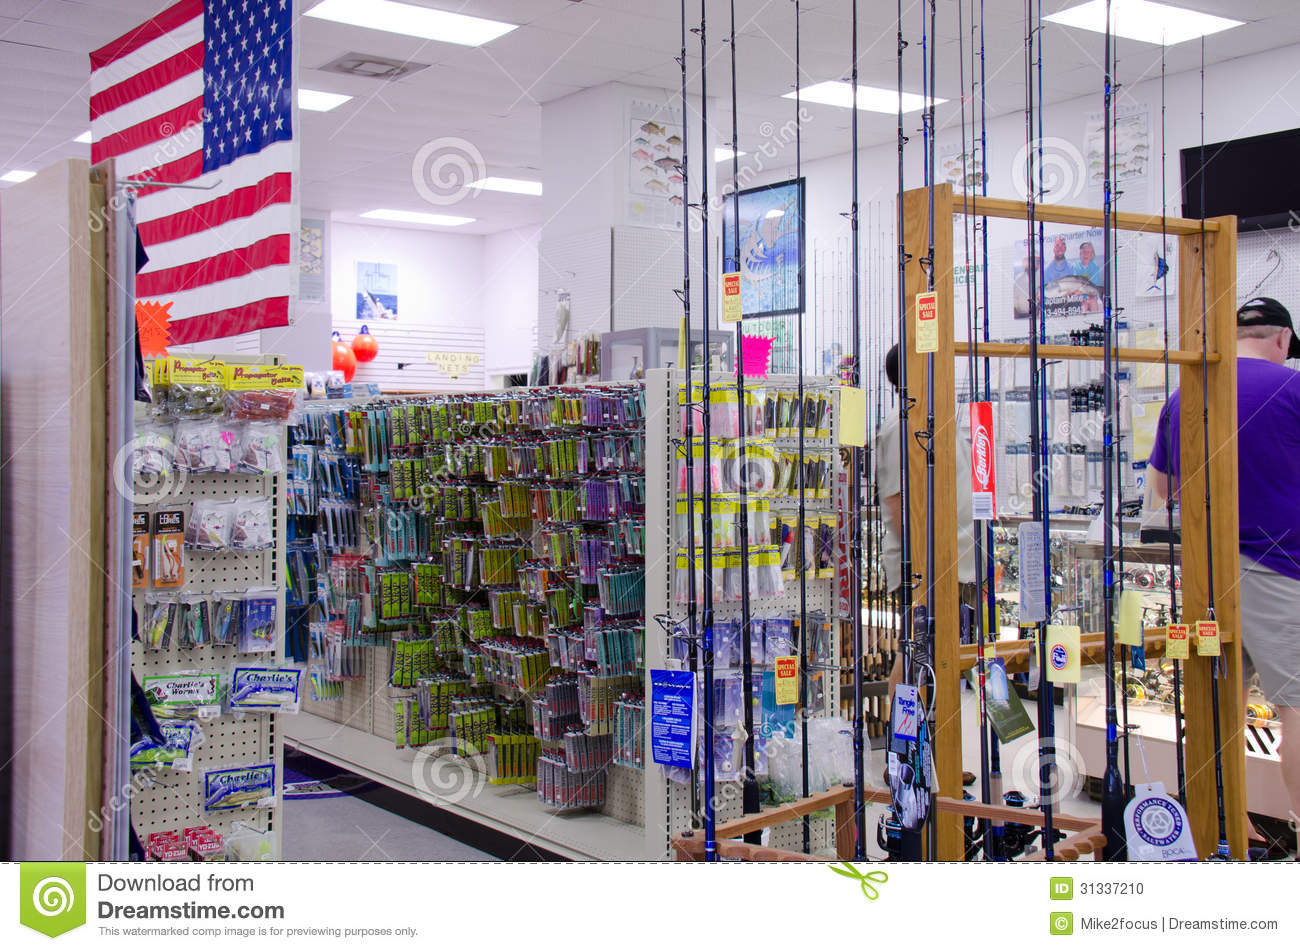 Fishing tackle supplies store shop editorial image image for Fishing equipment stores